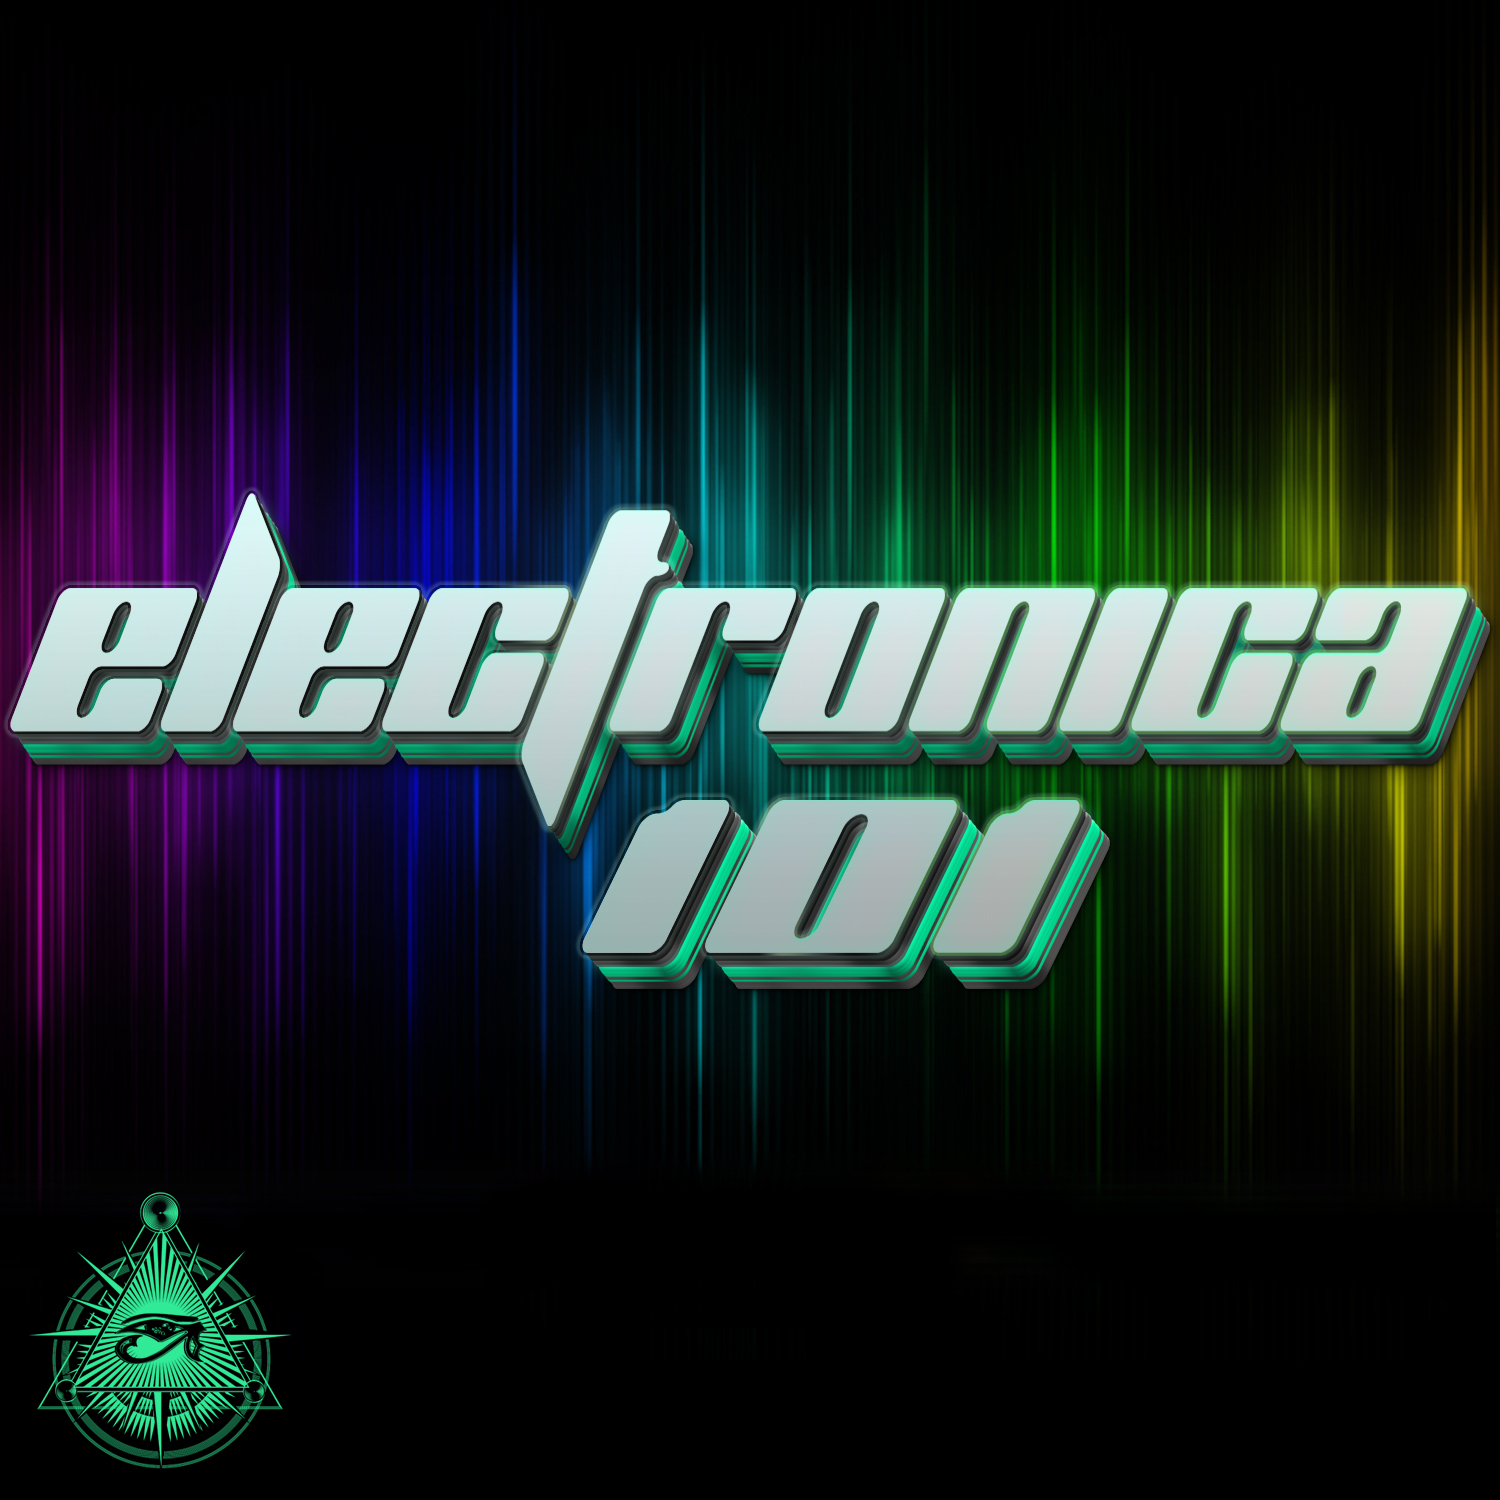 Electronica 101 - Cleopatra Records Playlist - Spotify